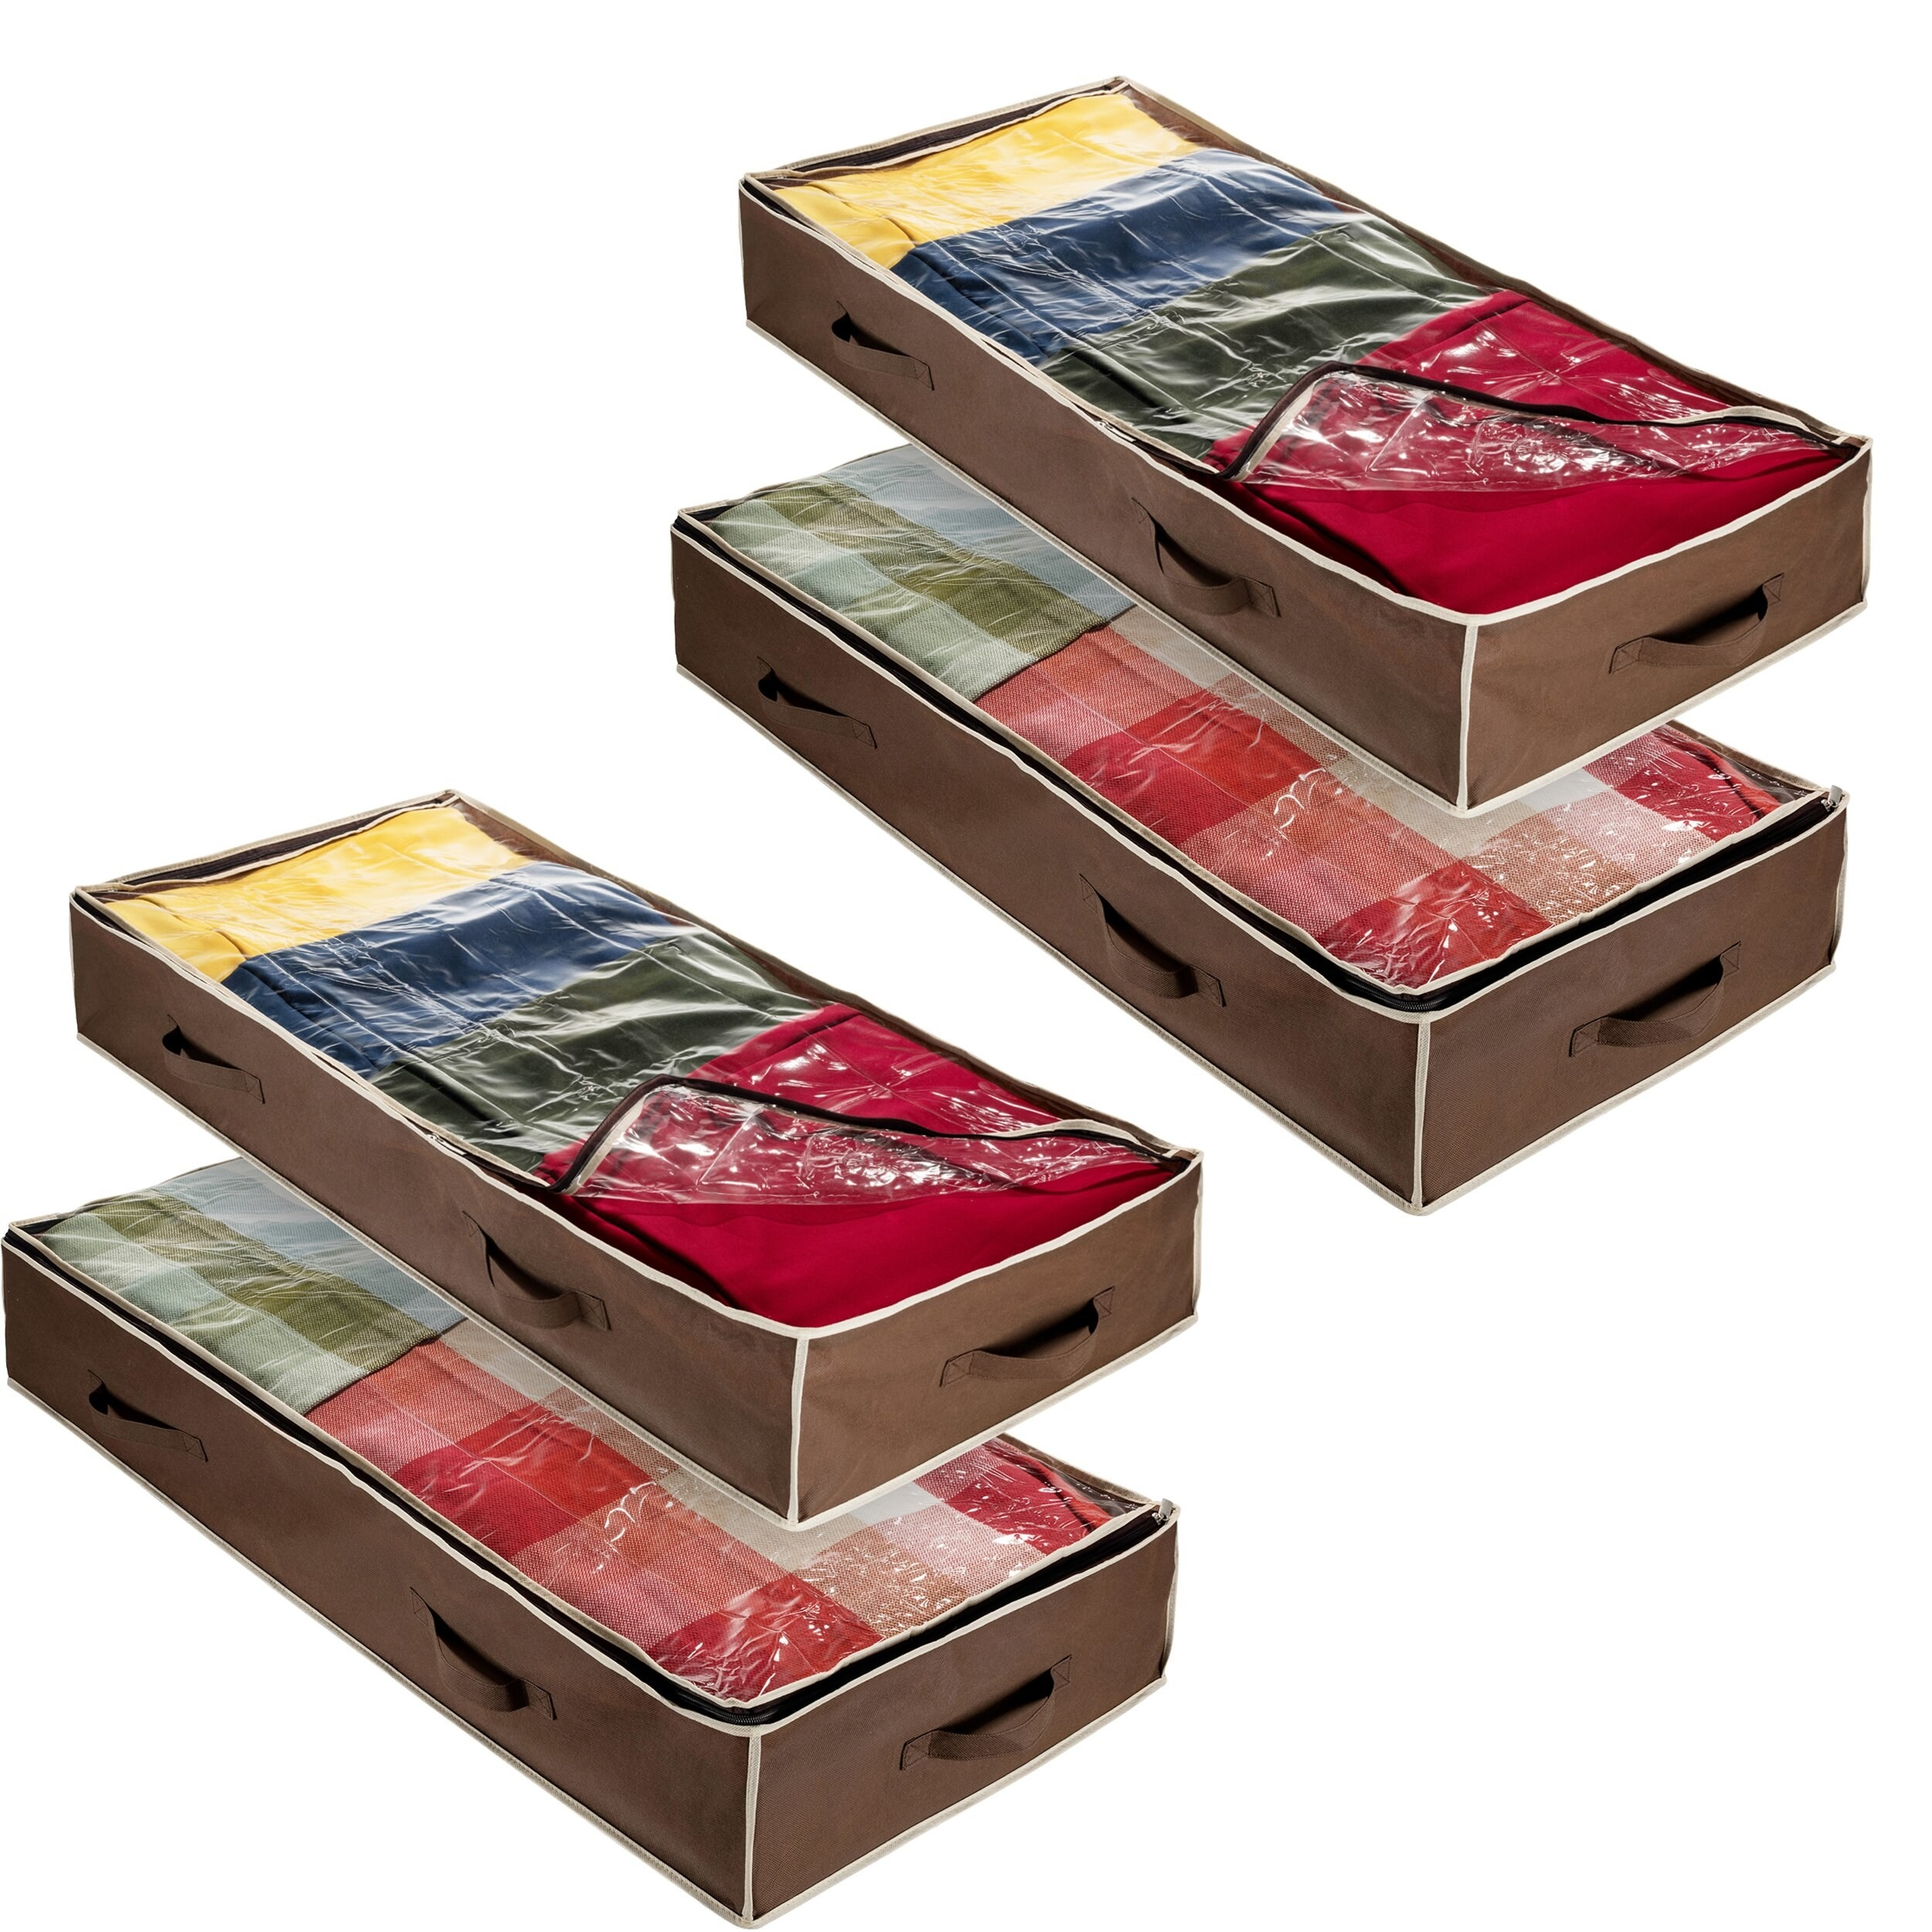 Four rectangular zippered storage bags with clear tops and brown edges and handles on all sides